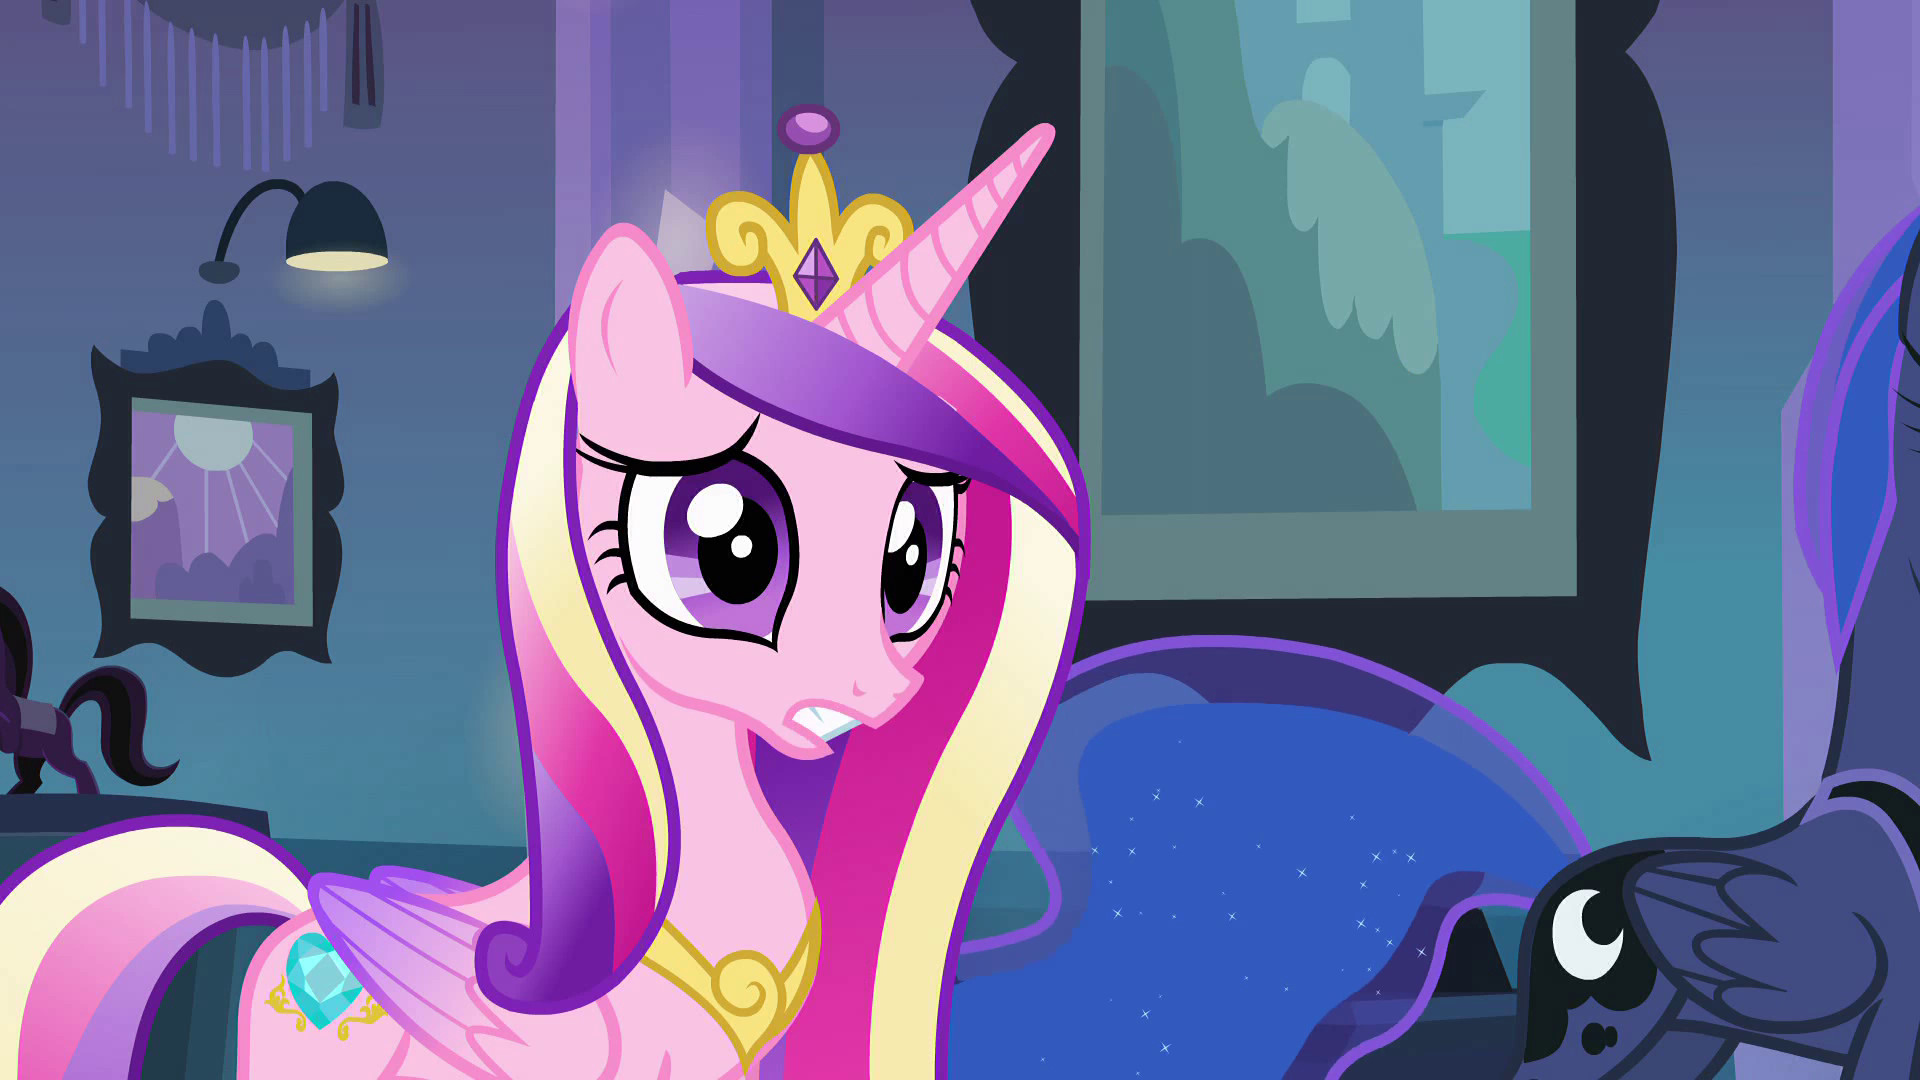 1920x1080 Image - Princess Cadance talking to Twilight EG.png | My Little Pony  Friendship is Magic Wiki | FANDOM powered by Wikia